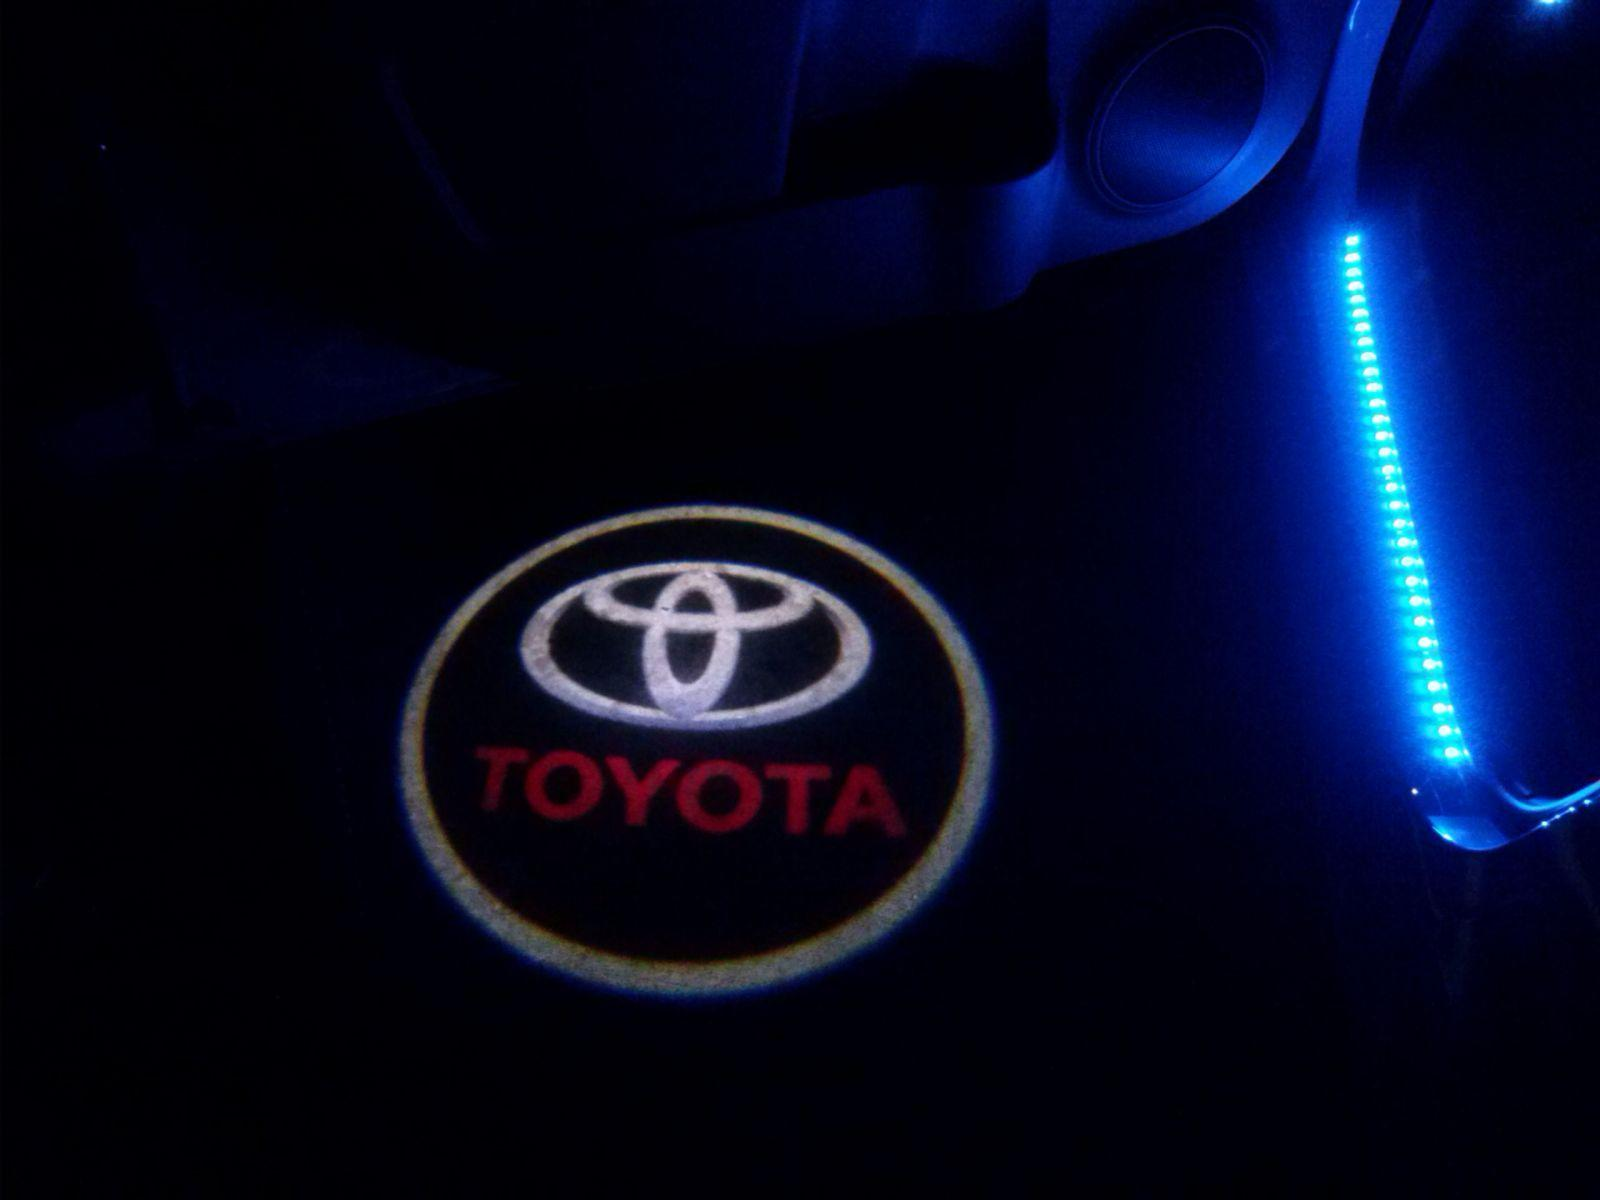 Toyota is the Light